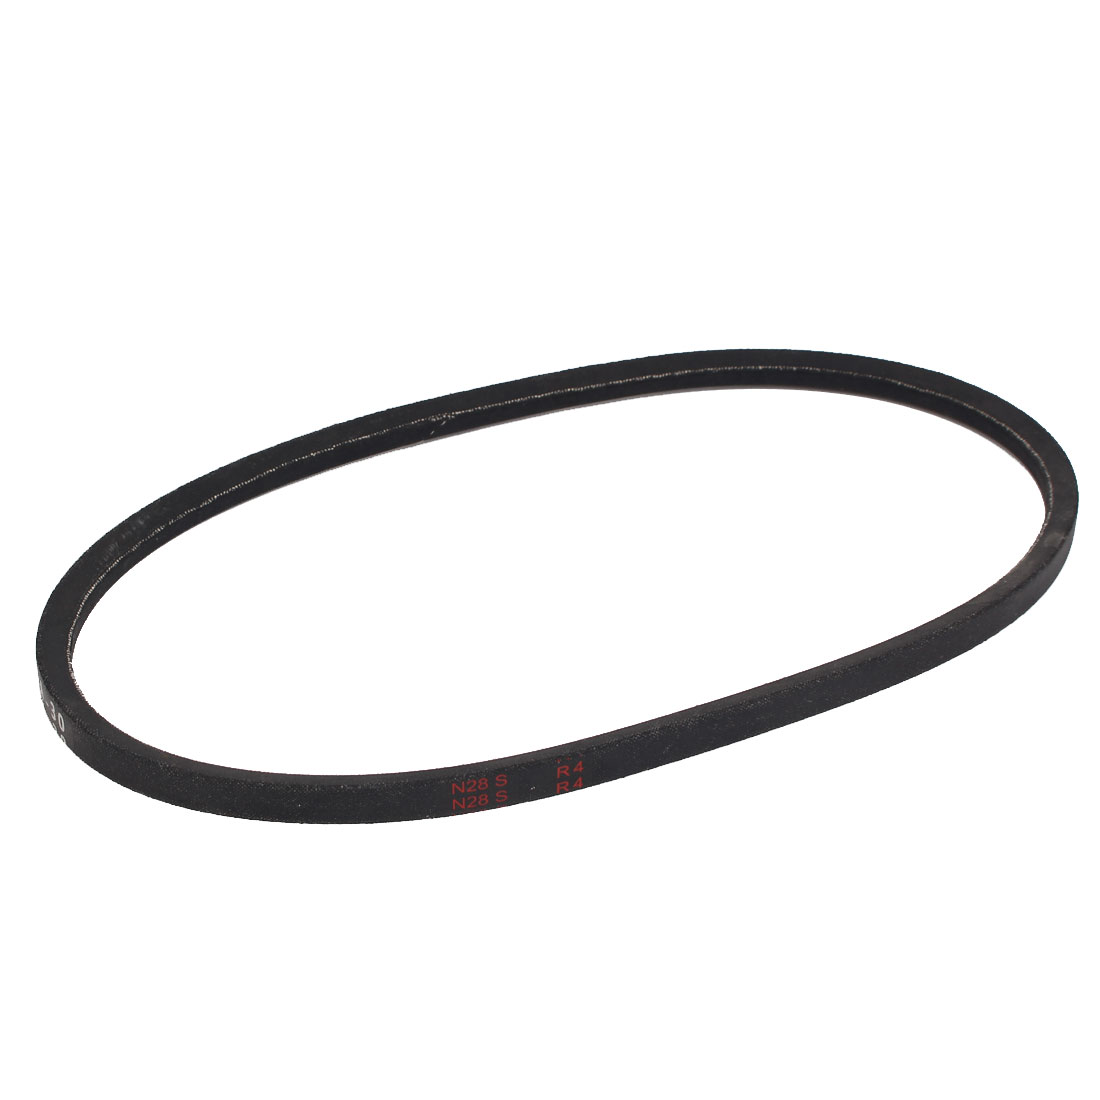 "A30 Type Rubber Machine Transmission Band Drive Vee V Belt 30"" x 1/2"" Black"